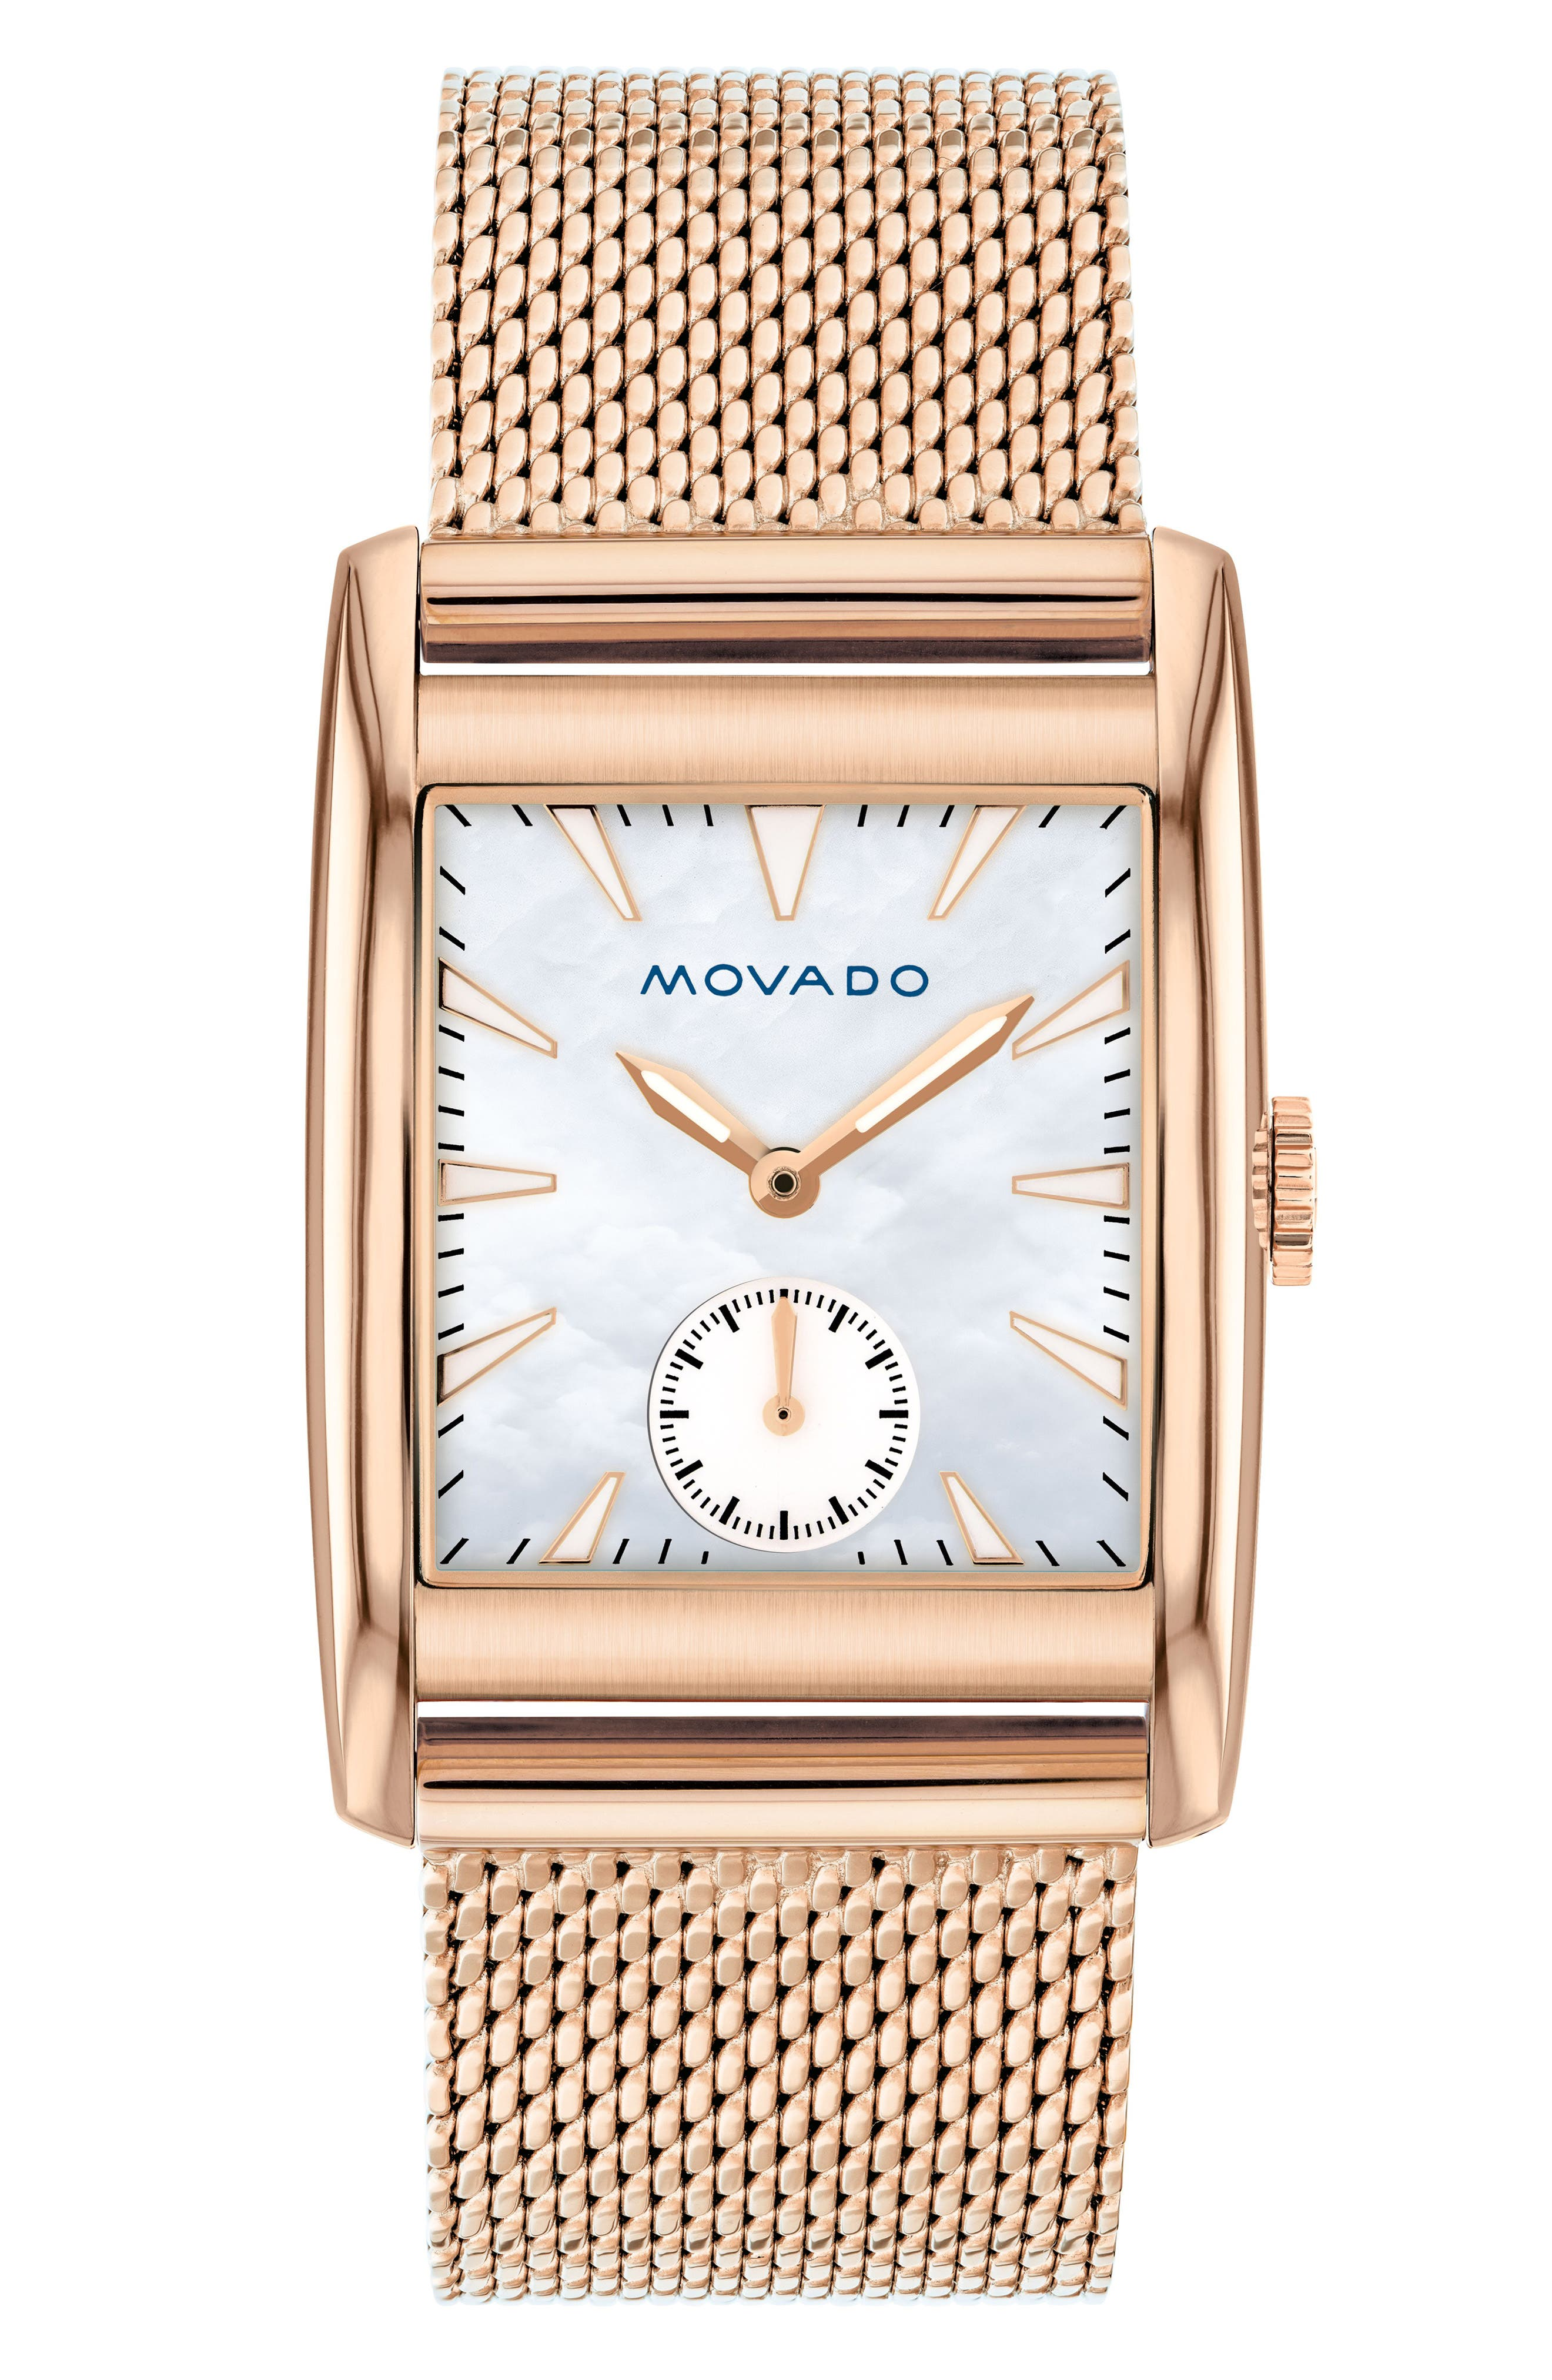 Alternate Image 1 Selected - Movado Heritage Mesh Strap Watch, 38mm